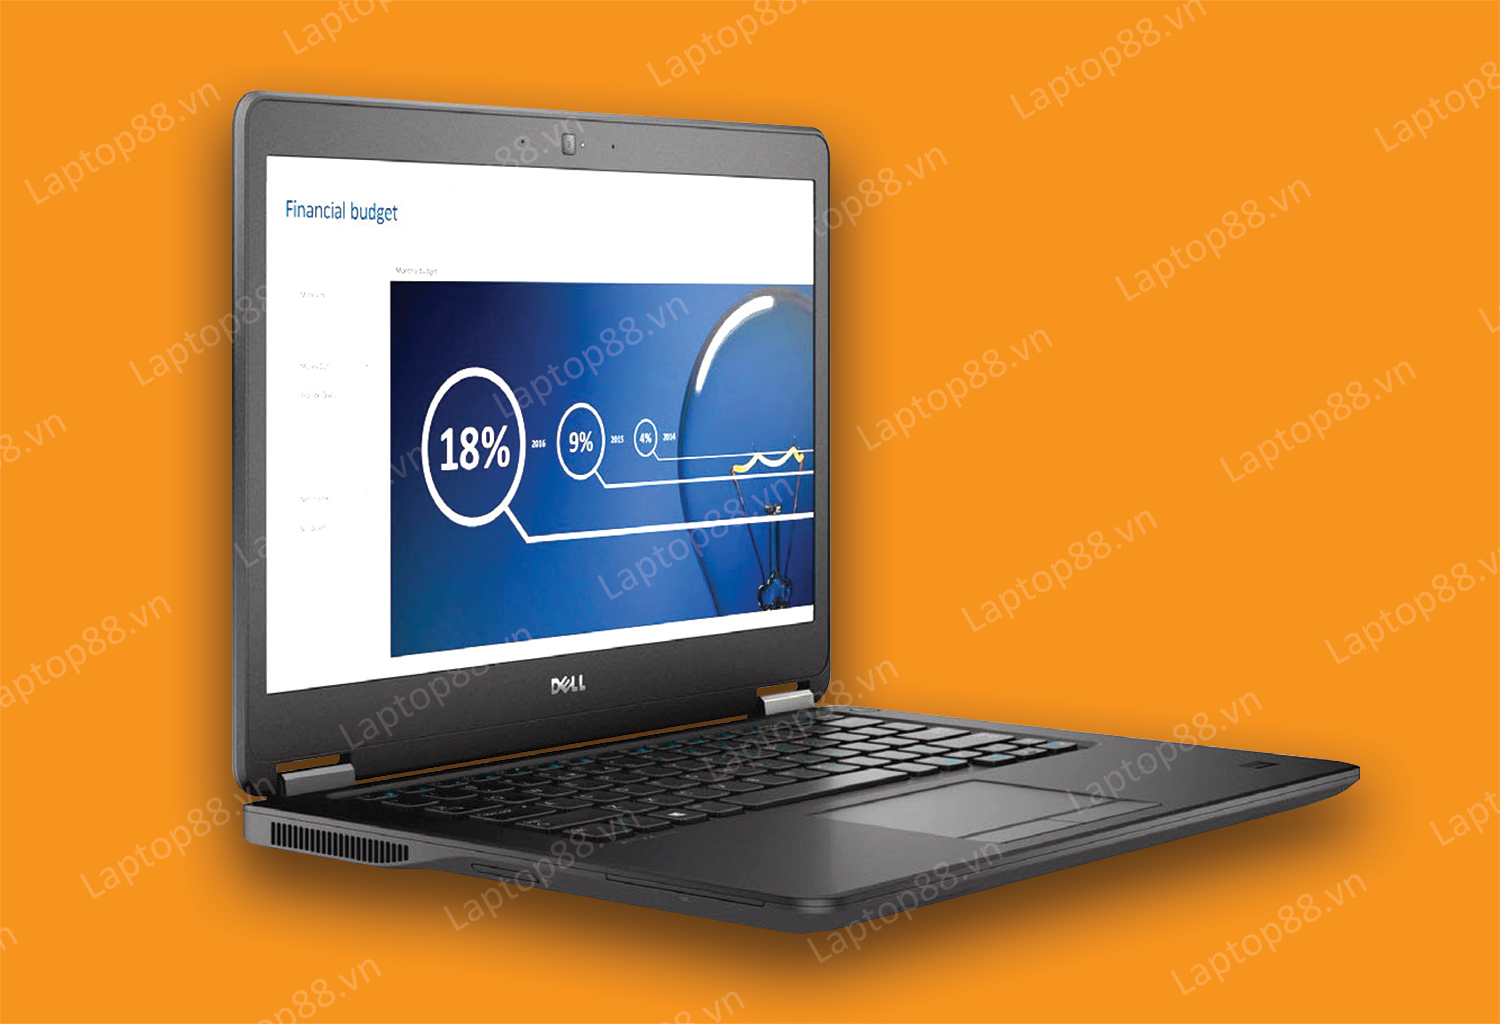 Laptop Cũ Dell Latitude E7450 - Flash sale